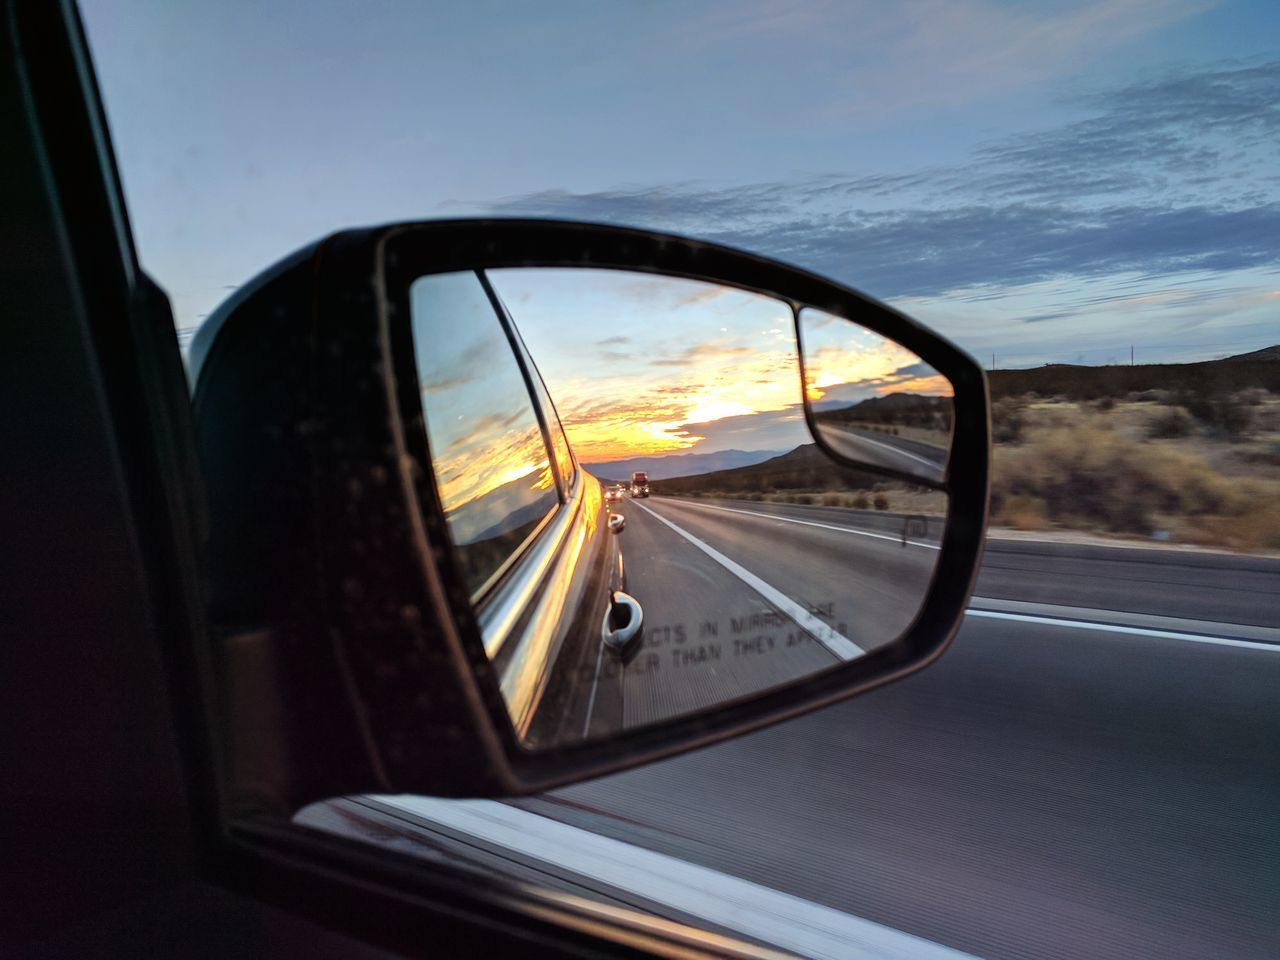 side view of the rear view Car On The Move Side-view Mirror Vehicle Mirror The Way Forward Outdoors In A Car On The Road Outdoor Photography Reflection EyeEm Gallery Mobile Photography Taking Photos Sunset No Edit No Fun Mirror Pic Eyem Gallery